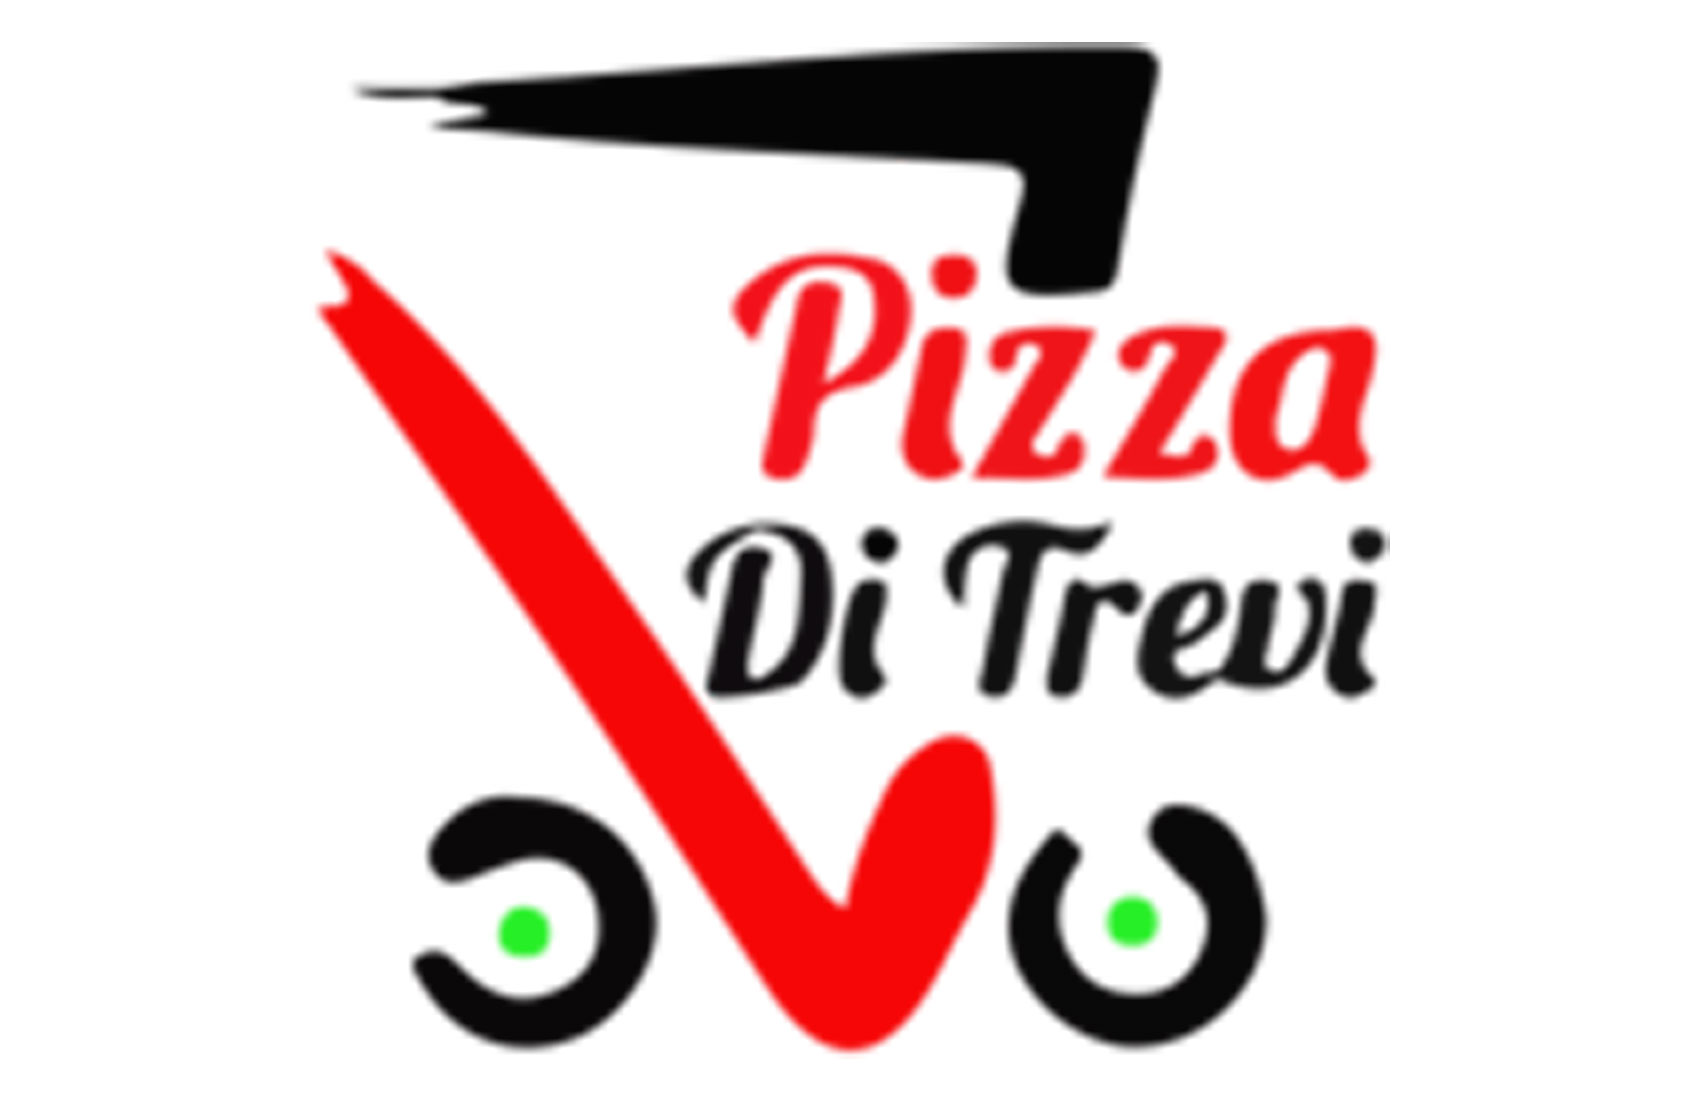 Pizza Di Trevi - Take Away Pizza